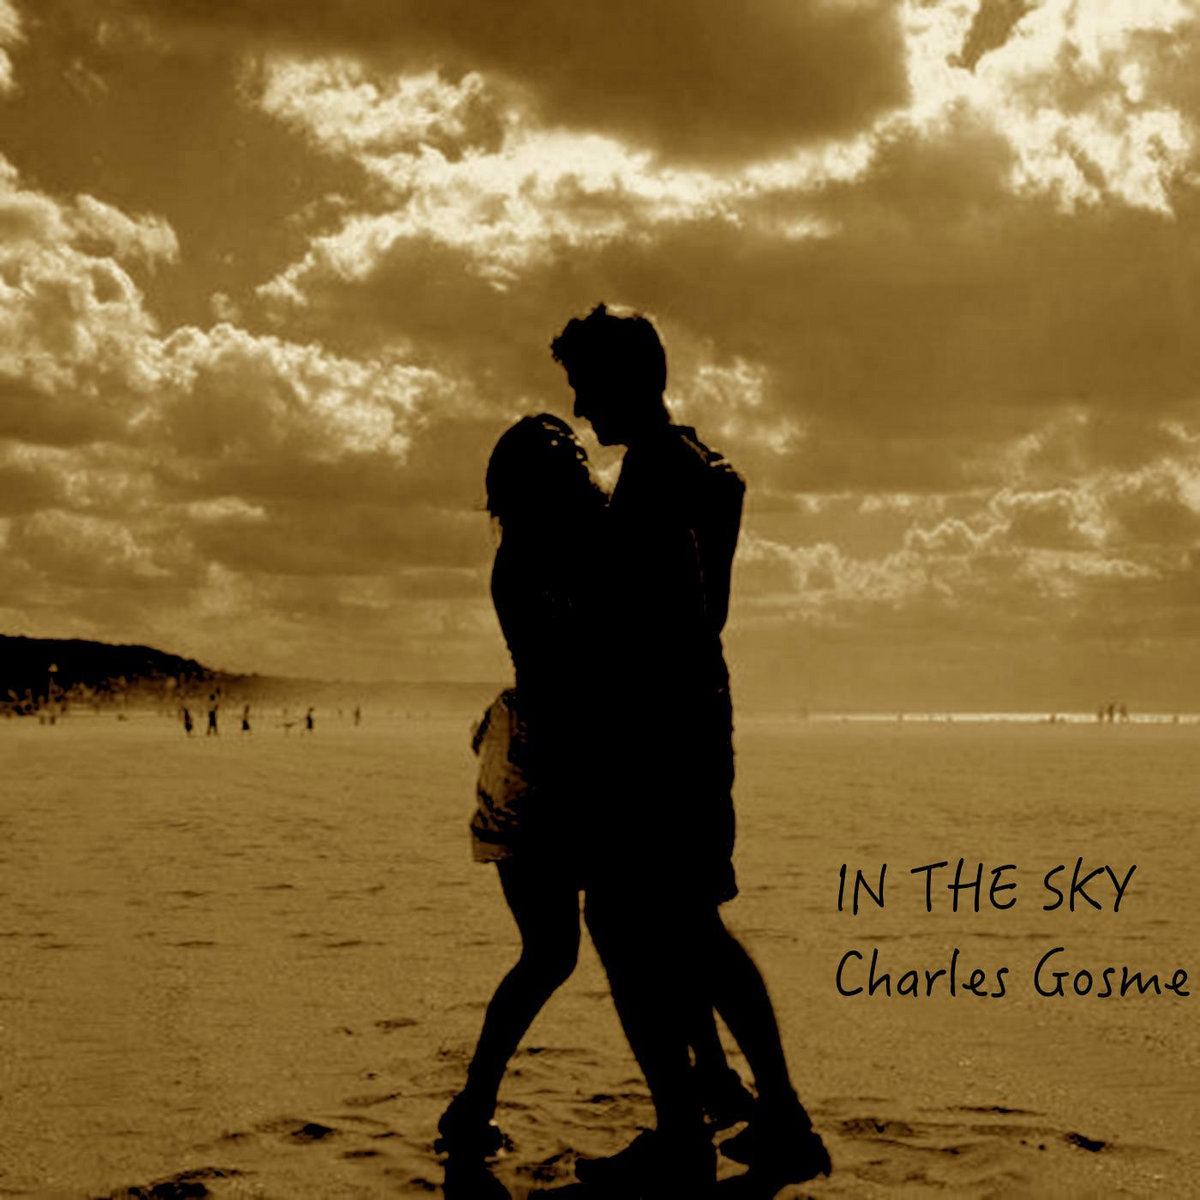 In the Sky by Charles Gosme